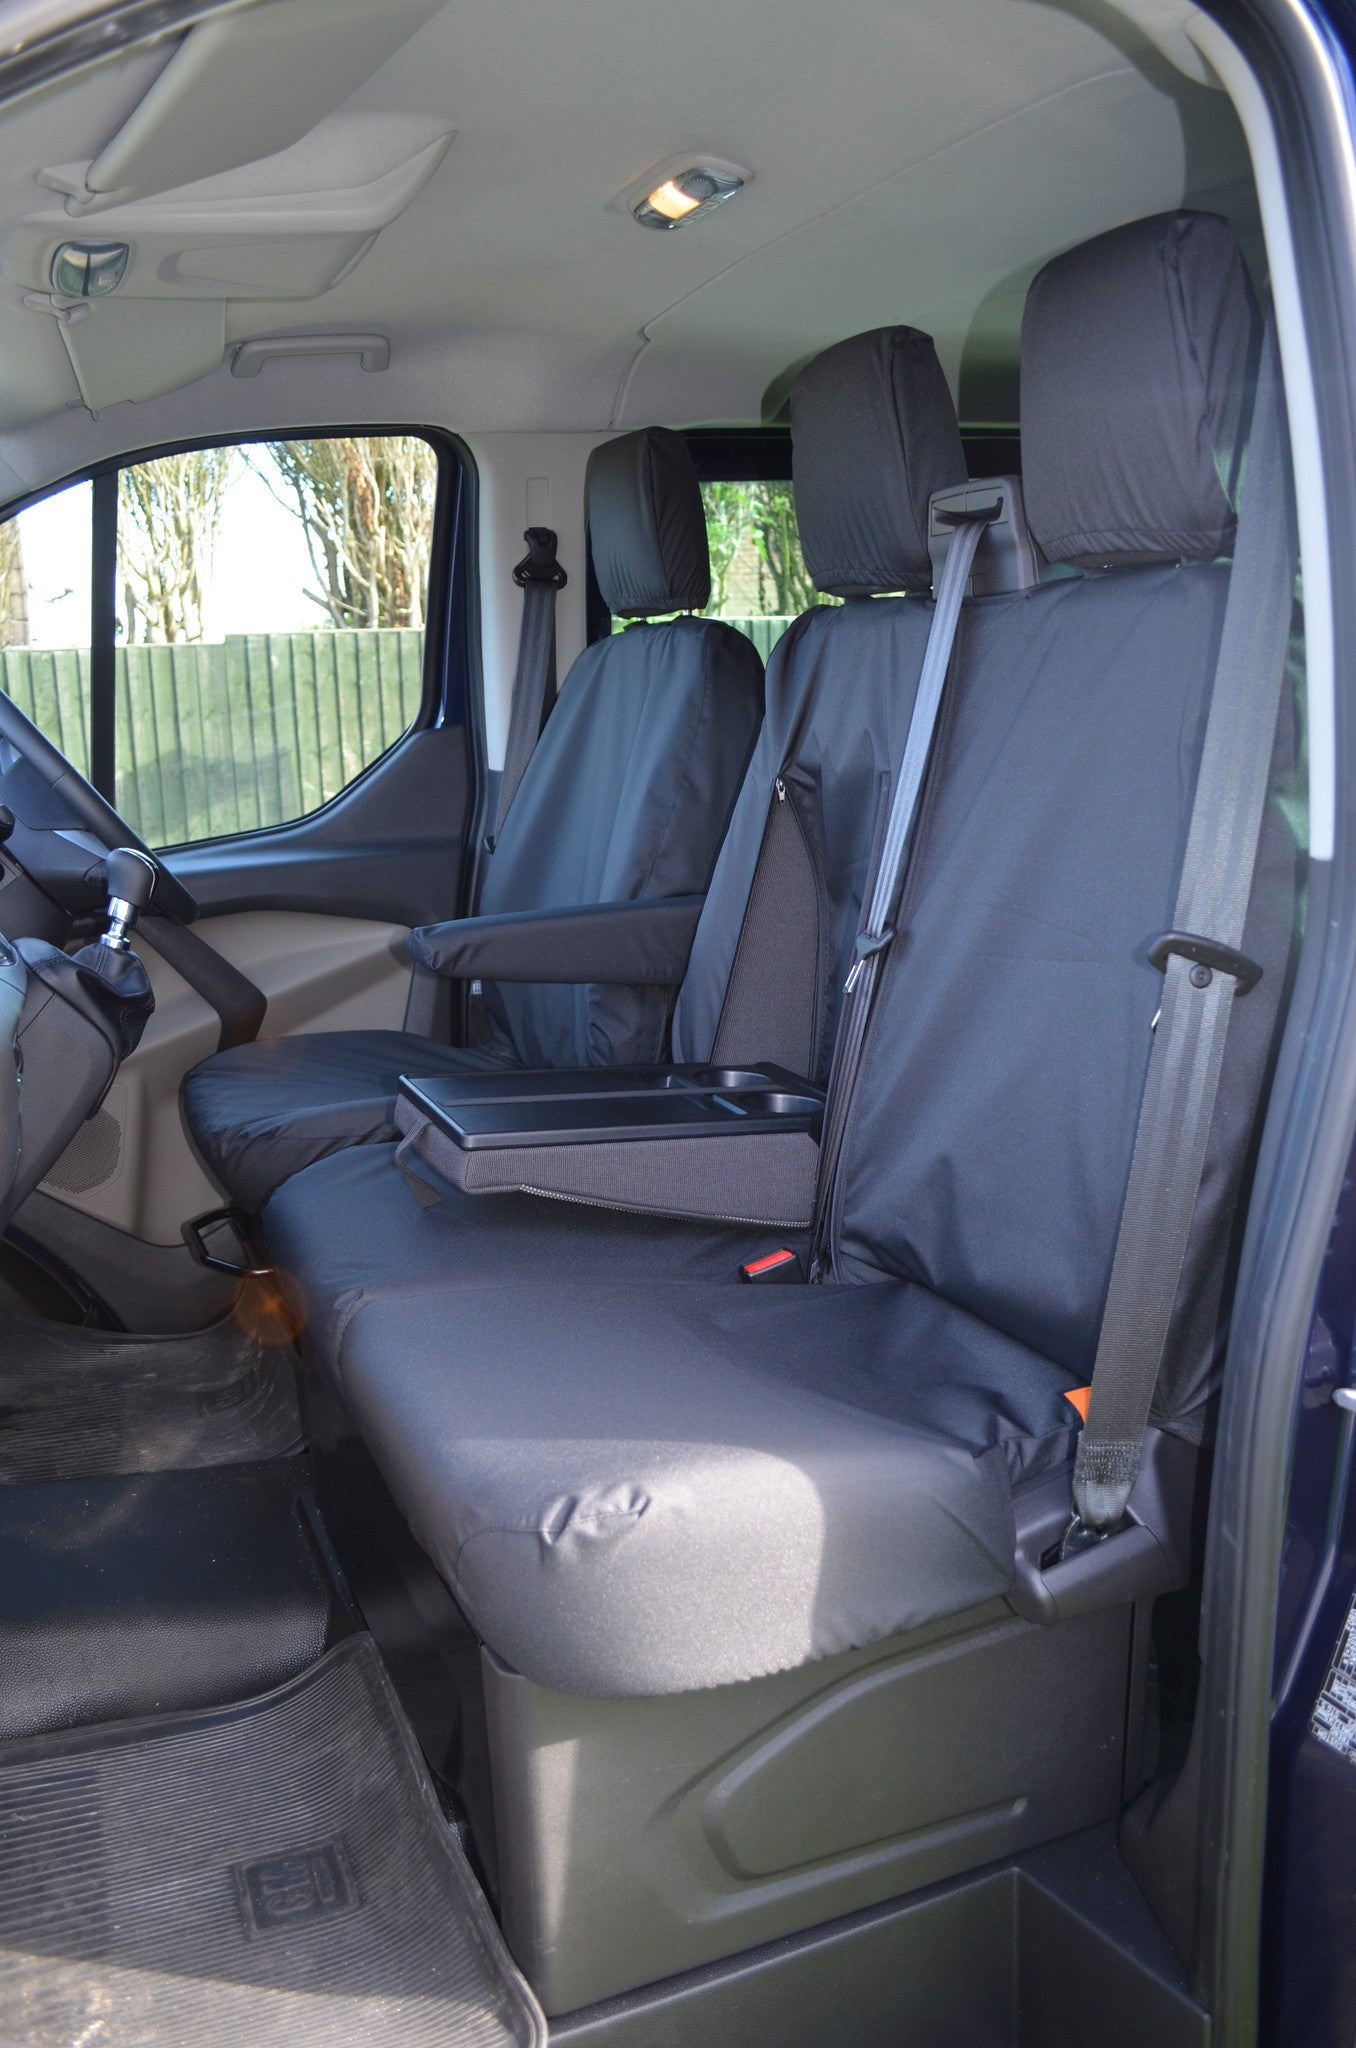 Fine Ford Transit Custom 2013 Waterproof Tailored Front Seat Covers Andrewgaddart Wooden Chair Designs For Living Room Andrewgaddartcom